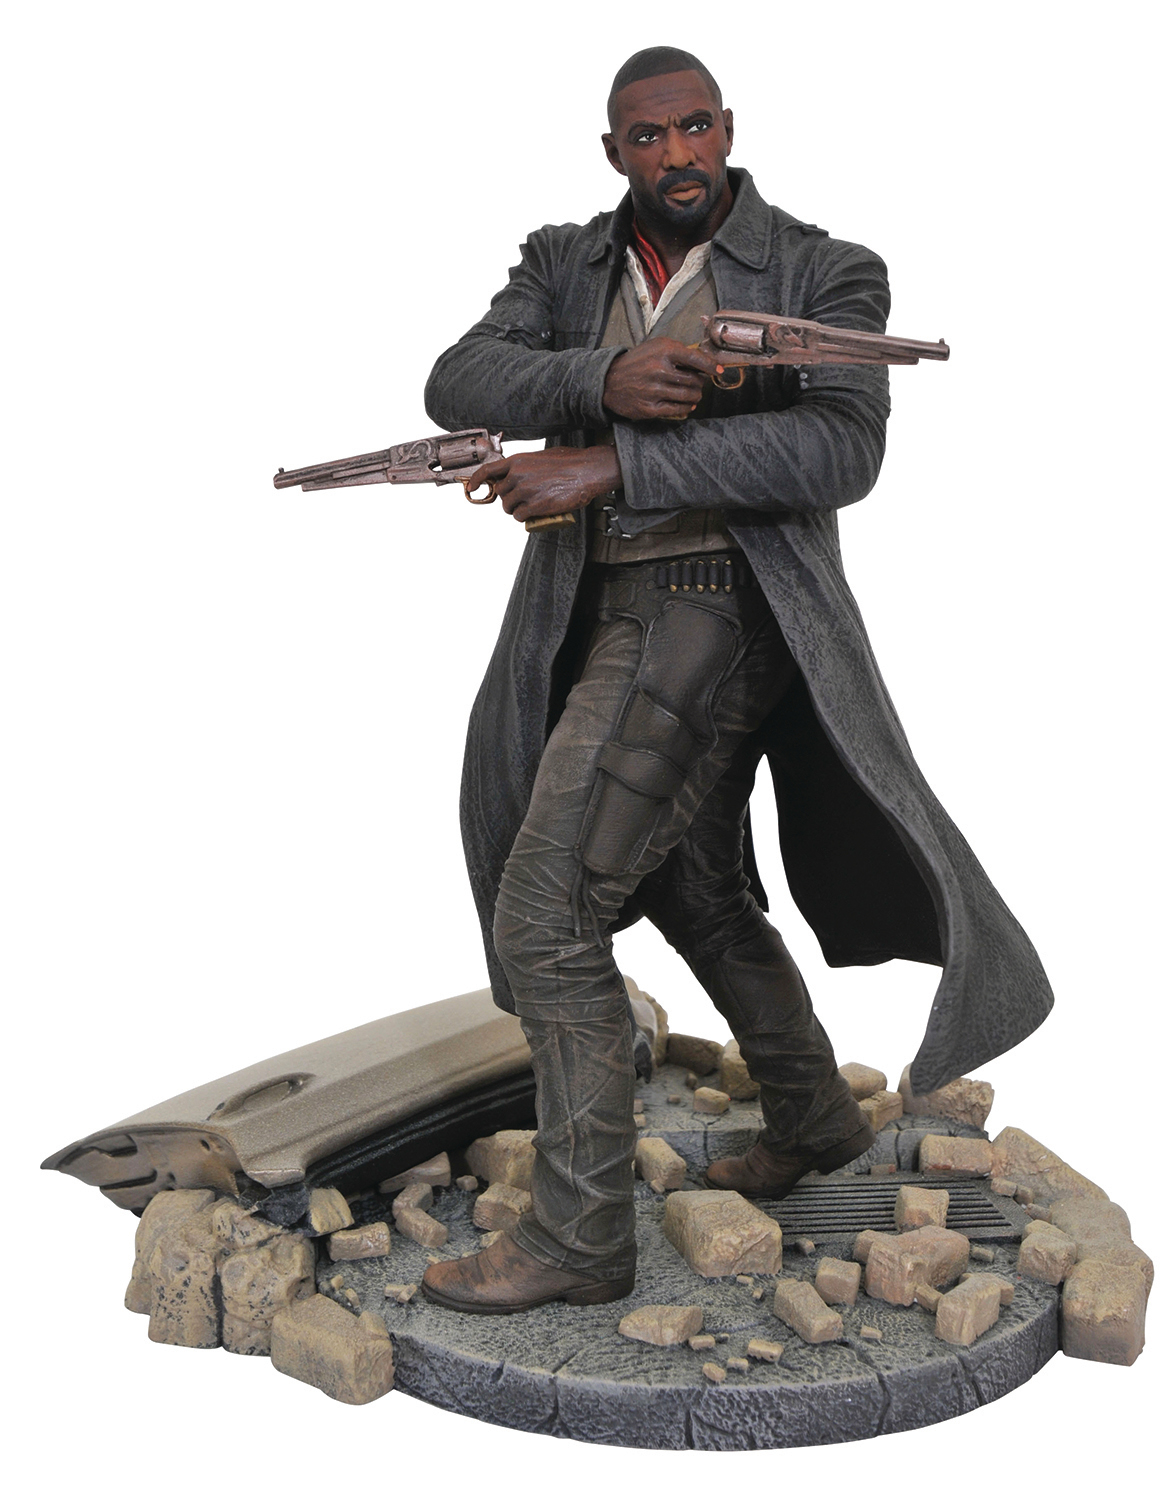 DARK TOWER GALLERY GUNSLINGER PVC FIGURE